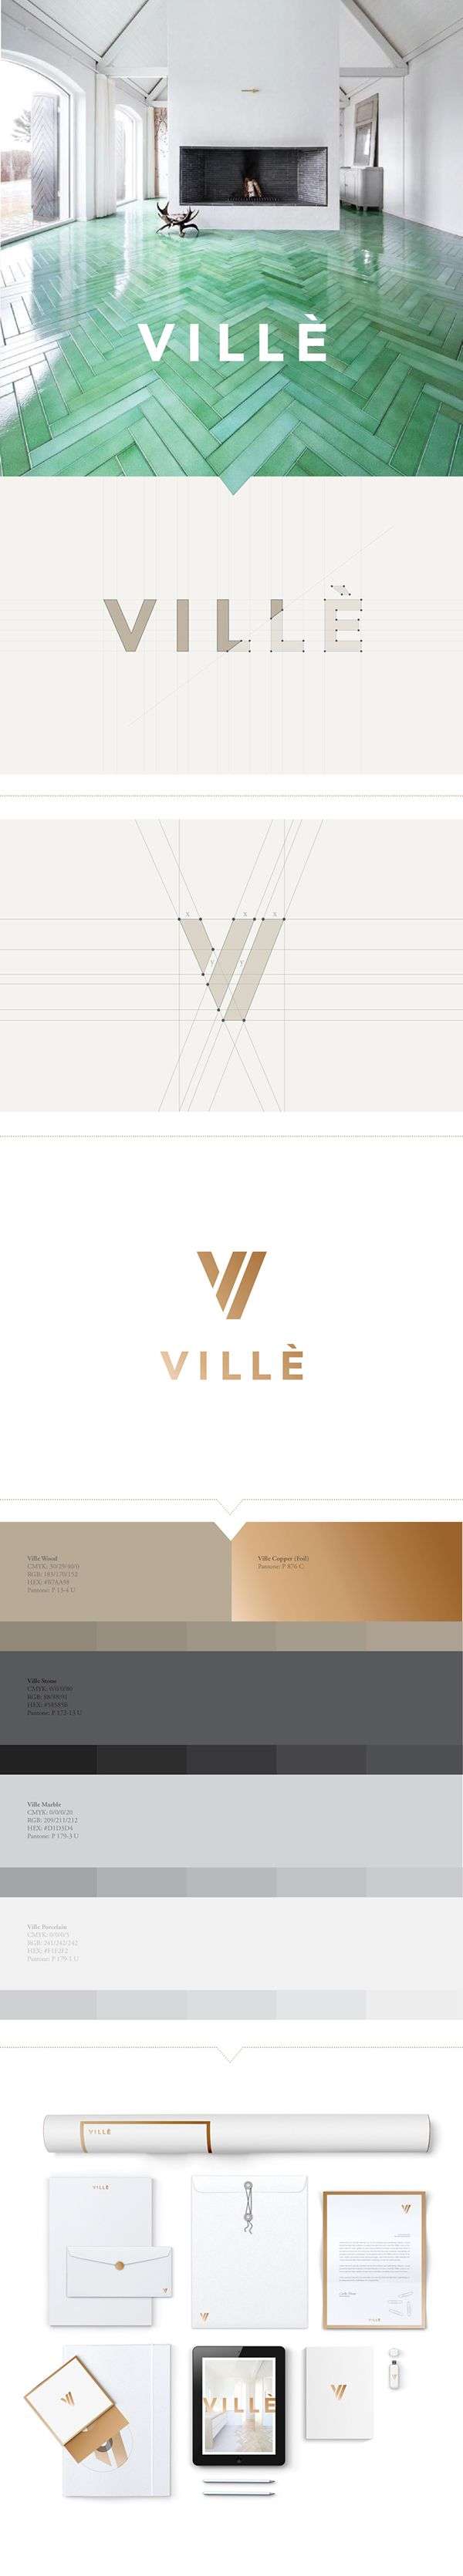 We worked with Villè, a well-established company providing architectural and design solutions to real estate developers in the A&D community. Knowing that the result of the project required nothing less than high-end luxury, we chose to create a brand rev…